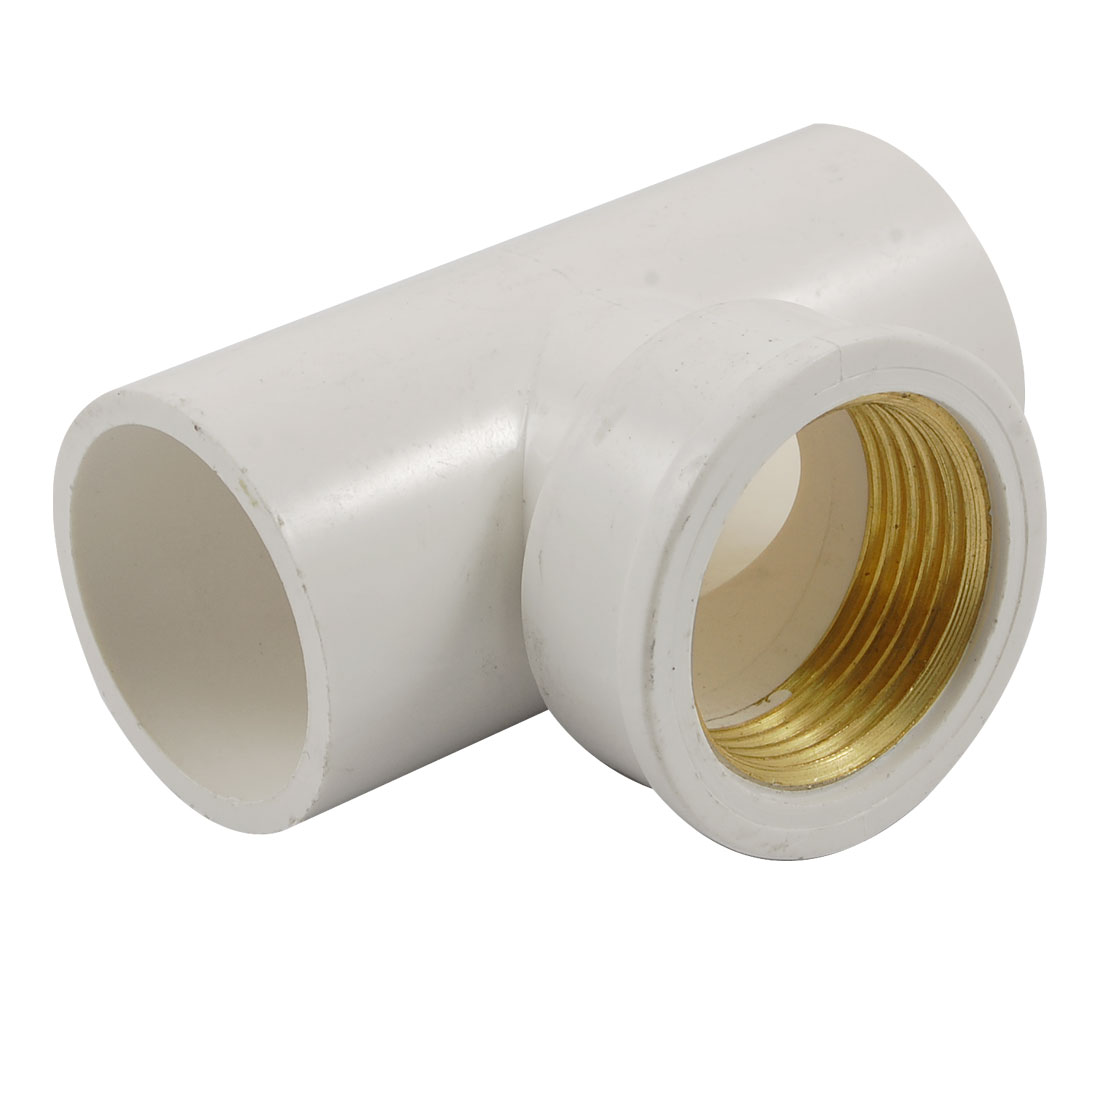 "1"" PT Female Thread 3 Way Water Pipe Tube Adapter Connector Fitting"